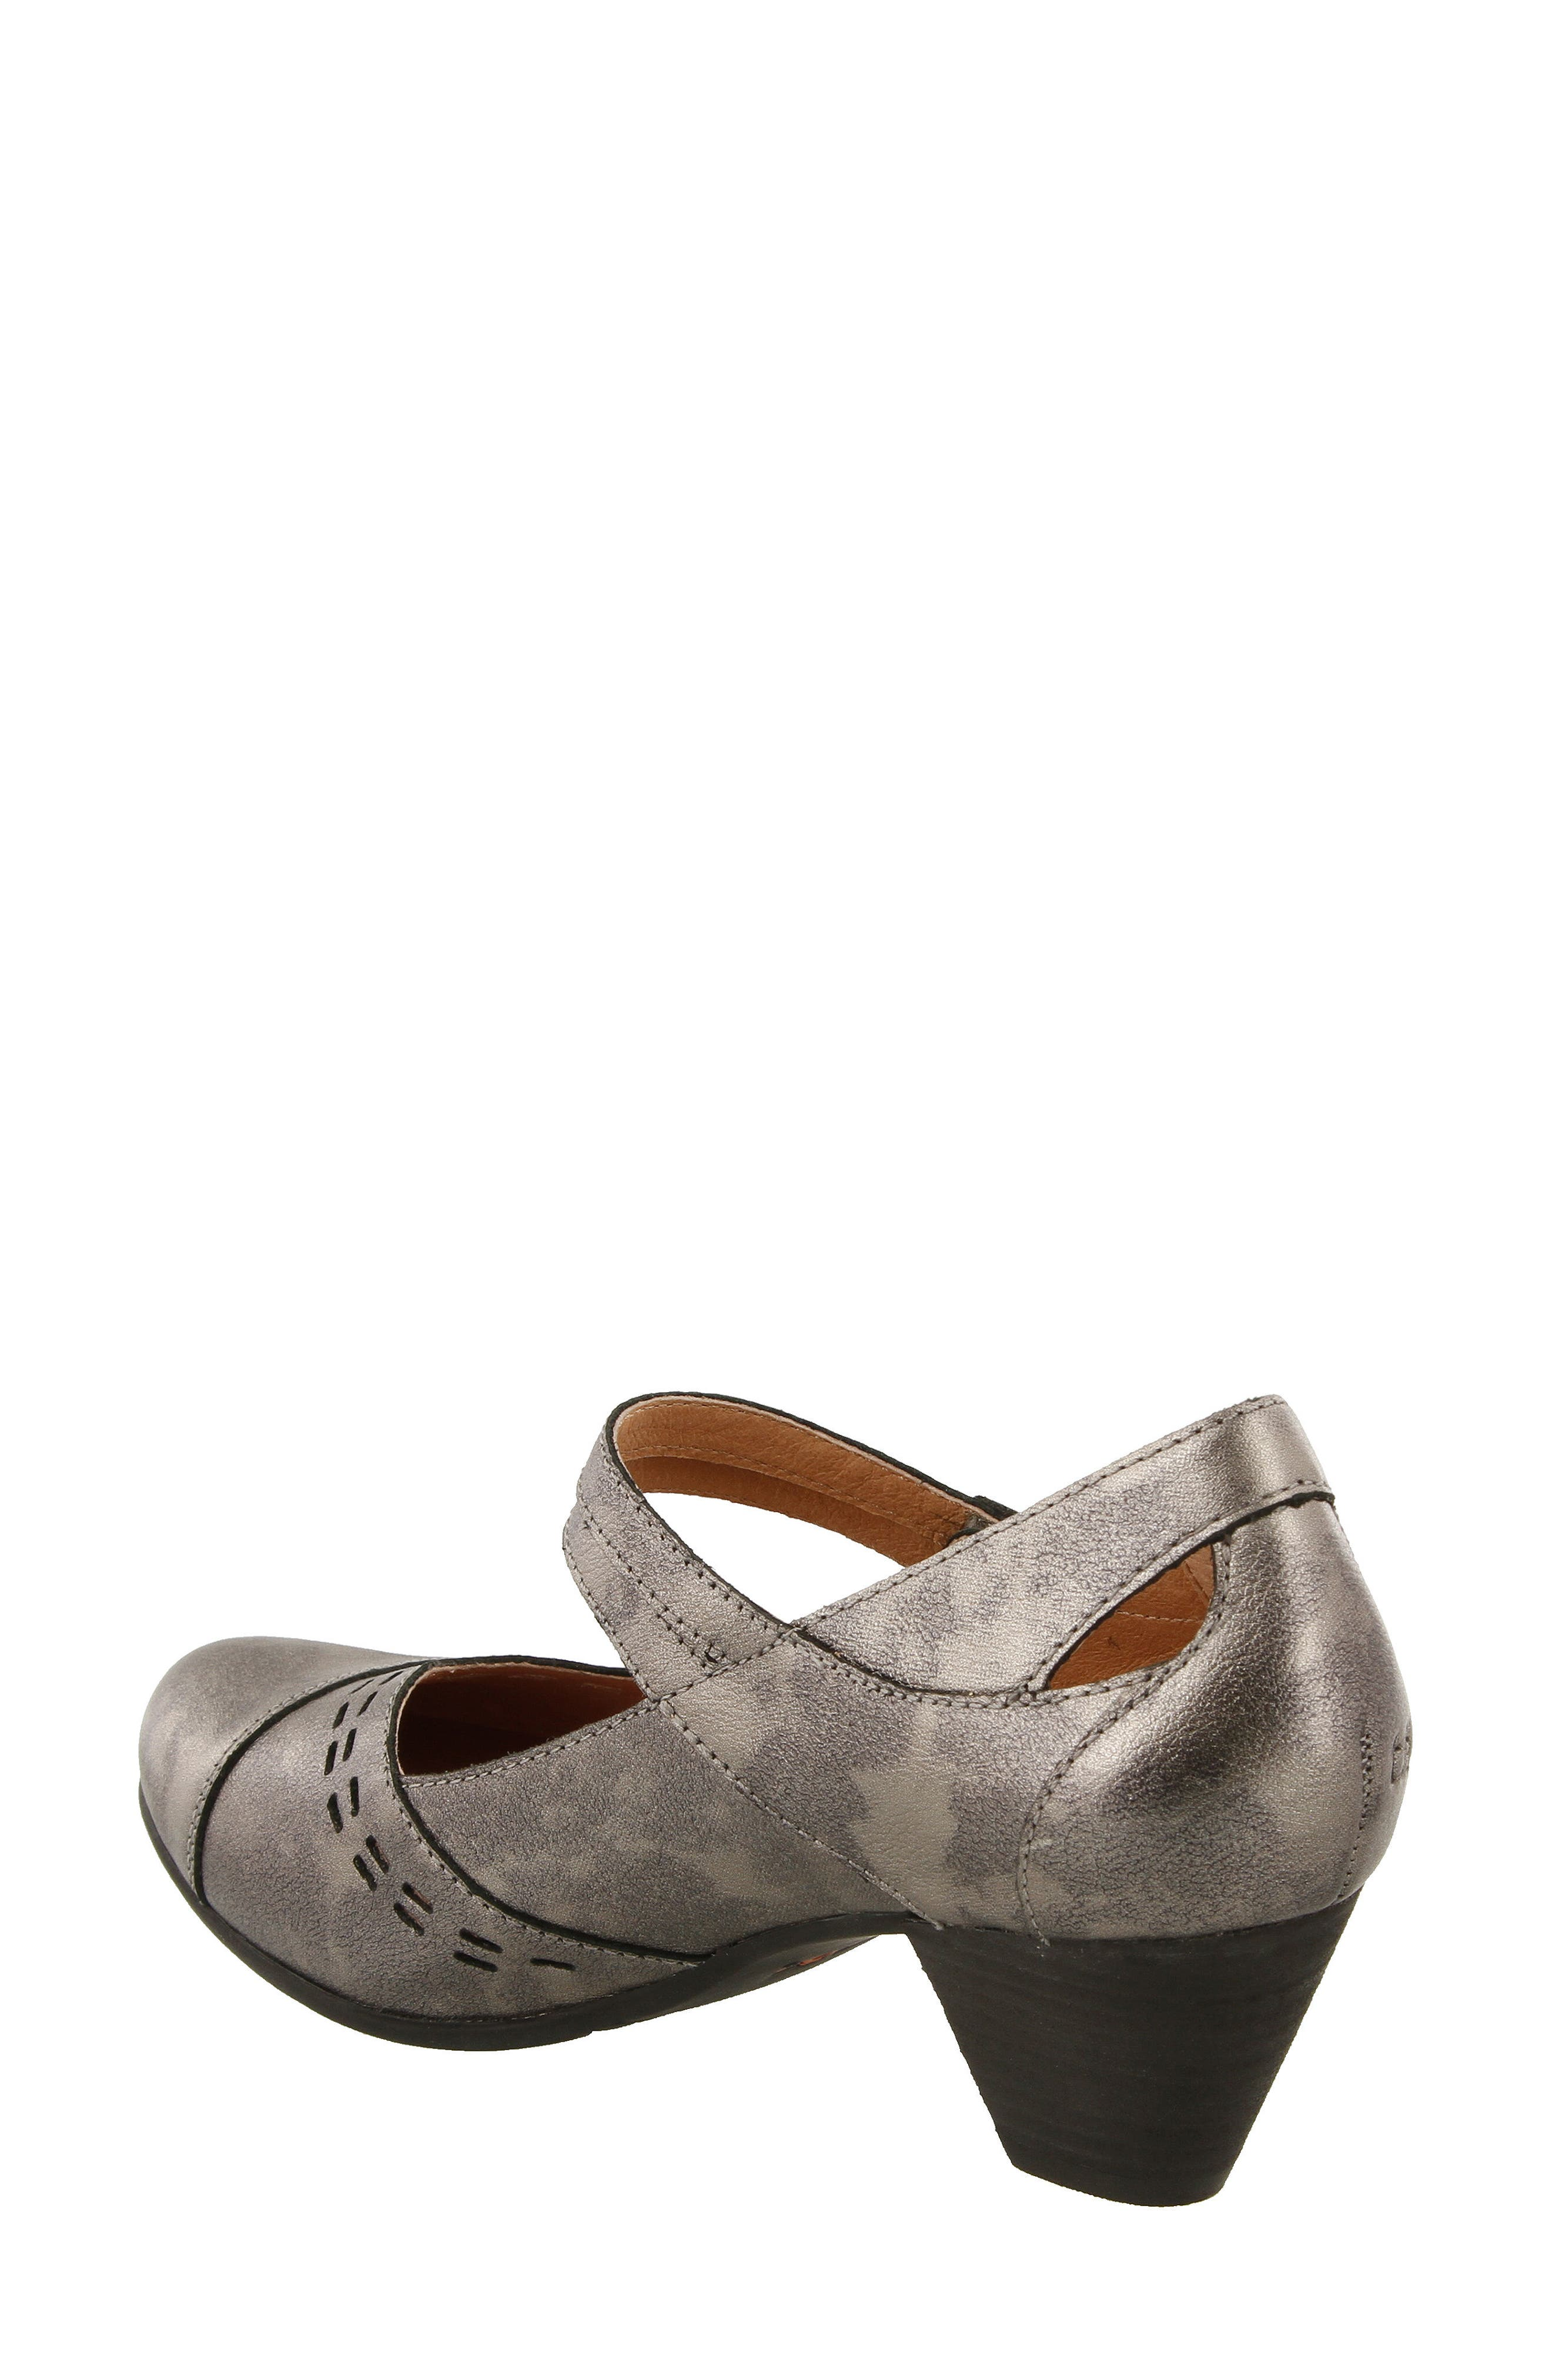 Stunner Laser Cutout Mary Jane Pump,                             Alternate thumbnail 2, color,                             Pewter Leather